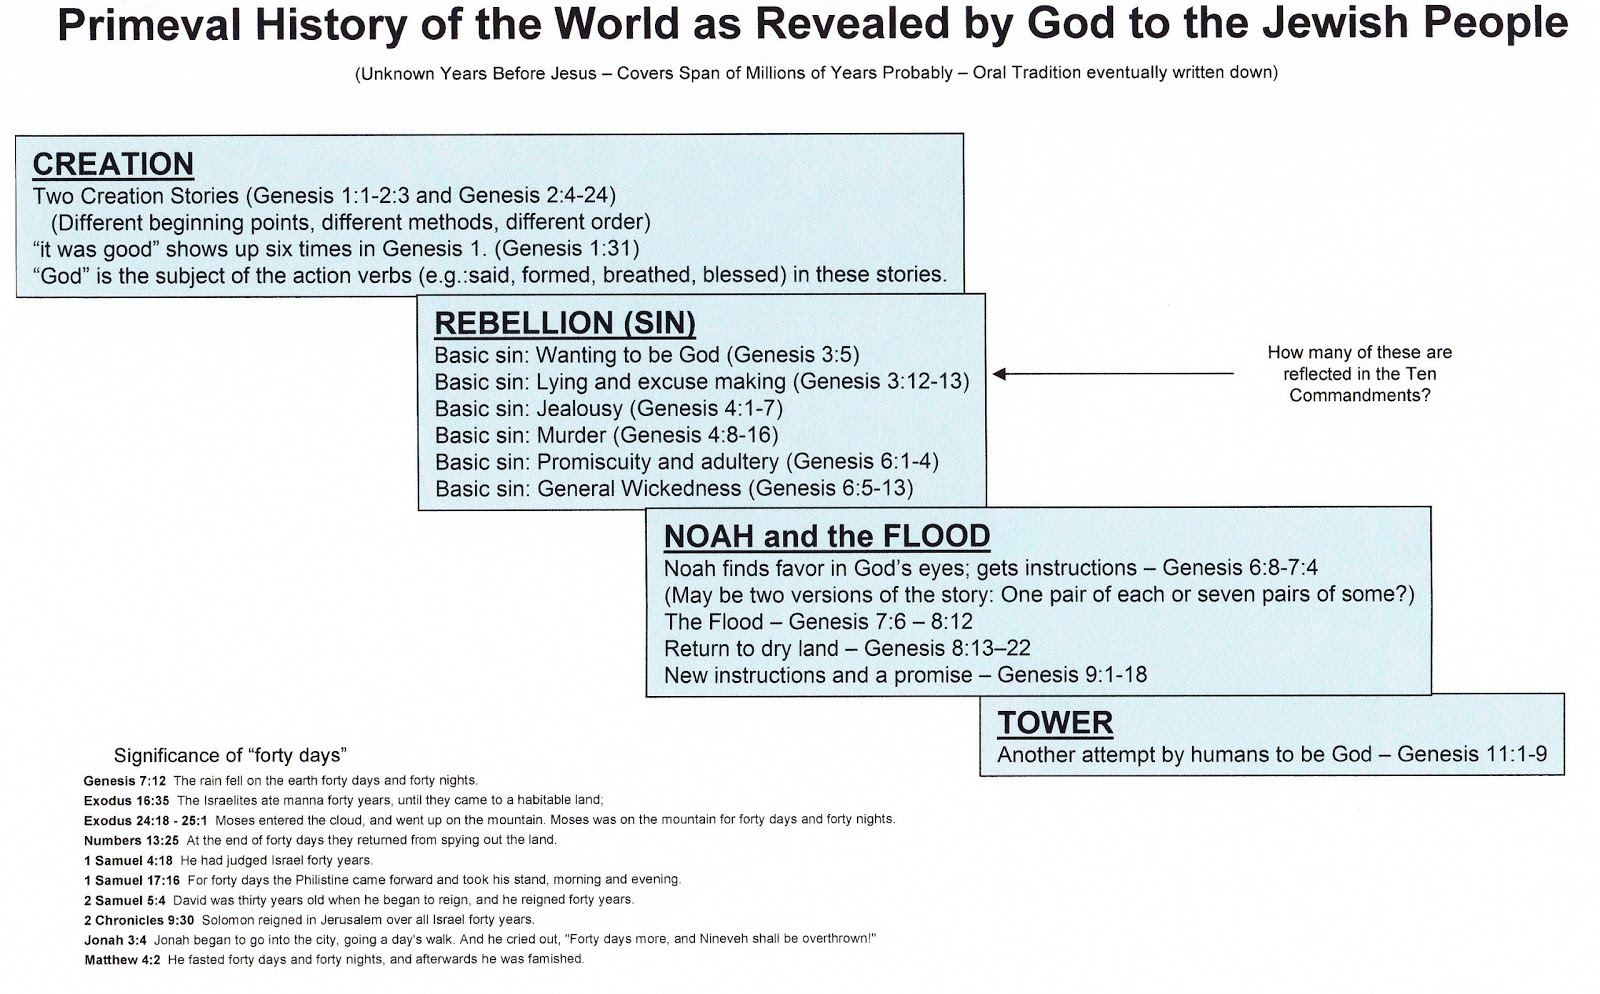 last of all primeval history in the bible